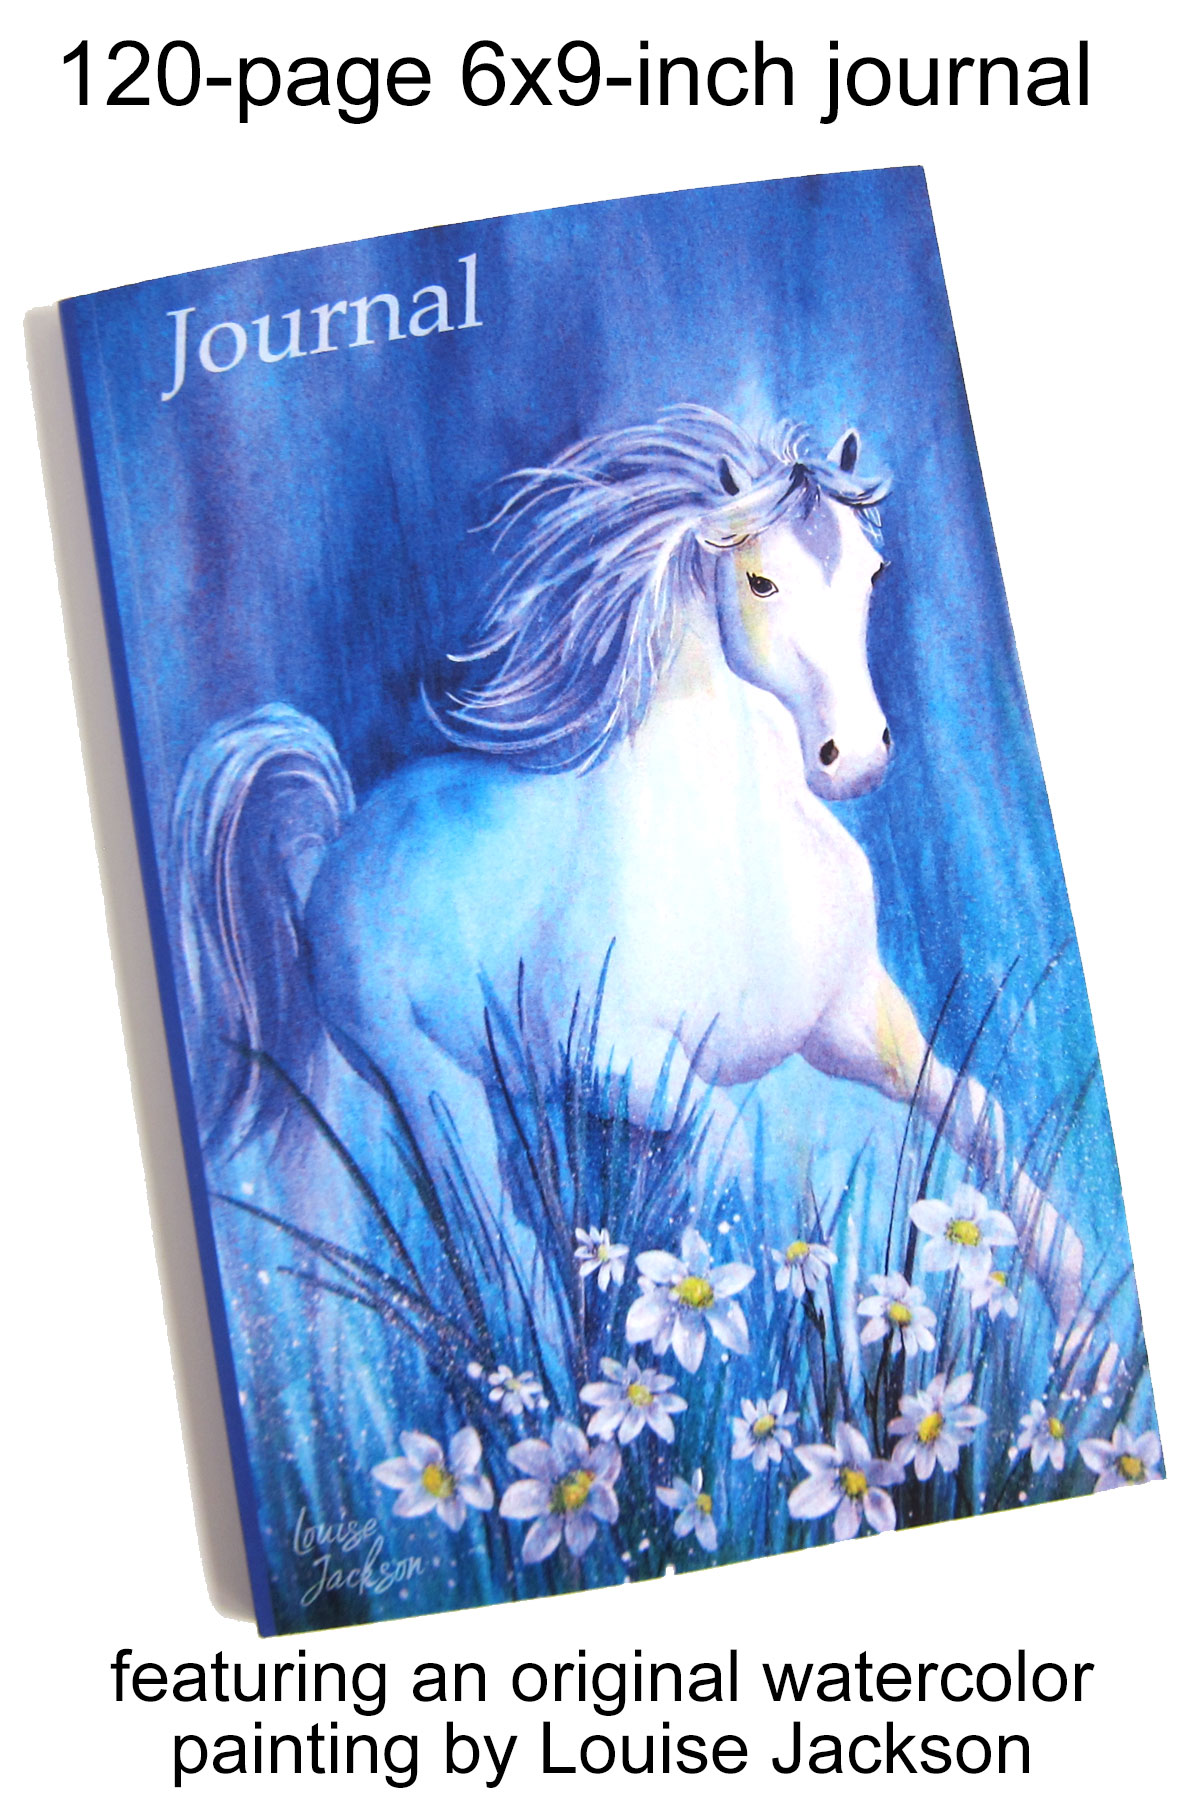 120-page 6x9 journal featuring a horse watercolor painting by Louise Jackson.